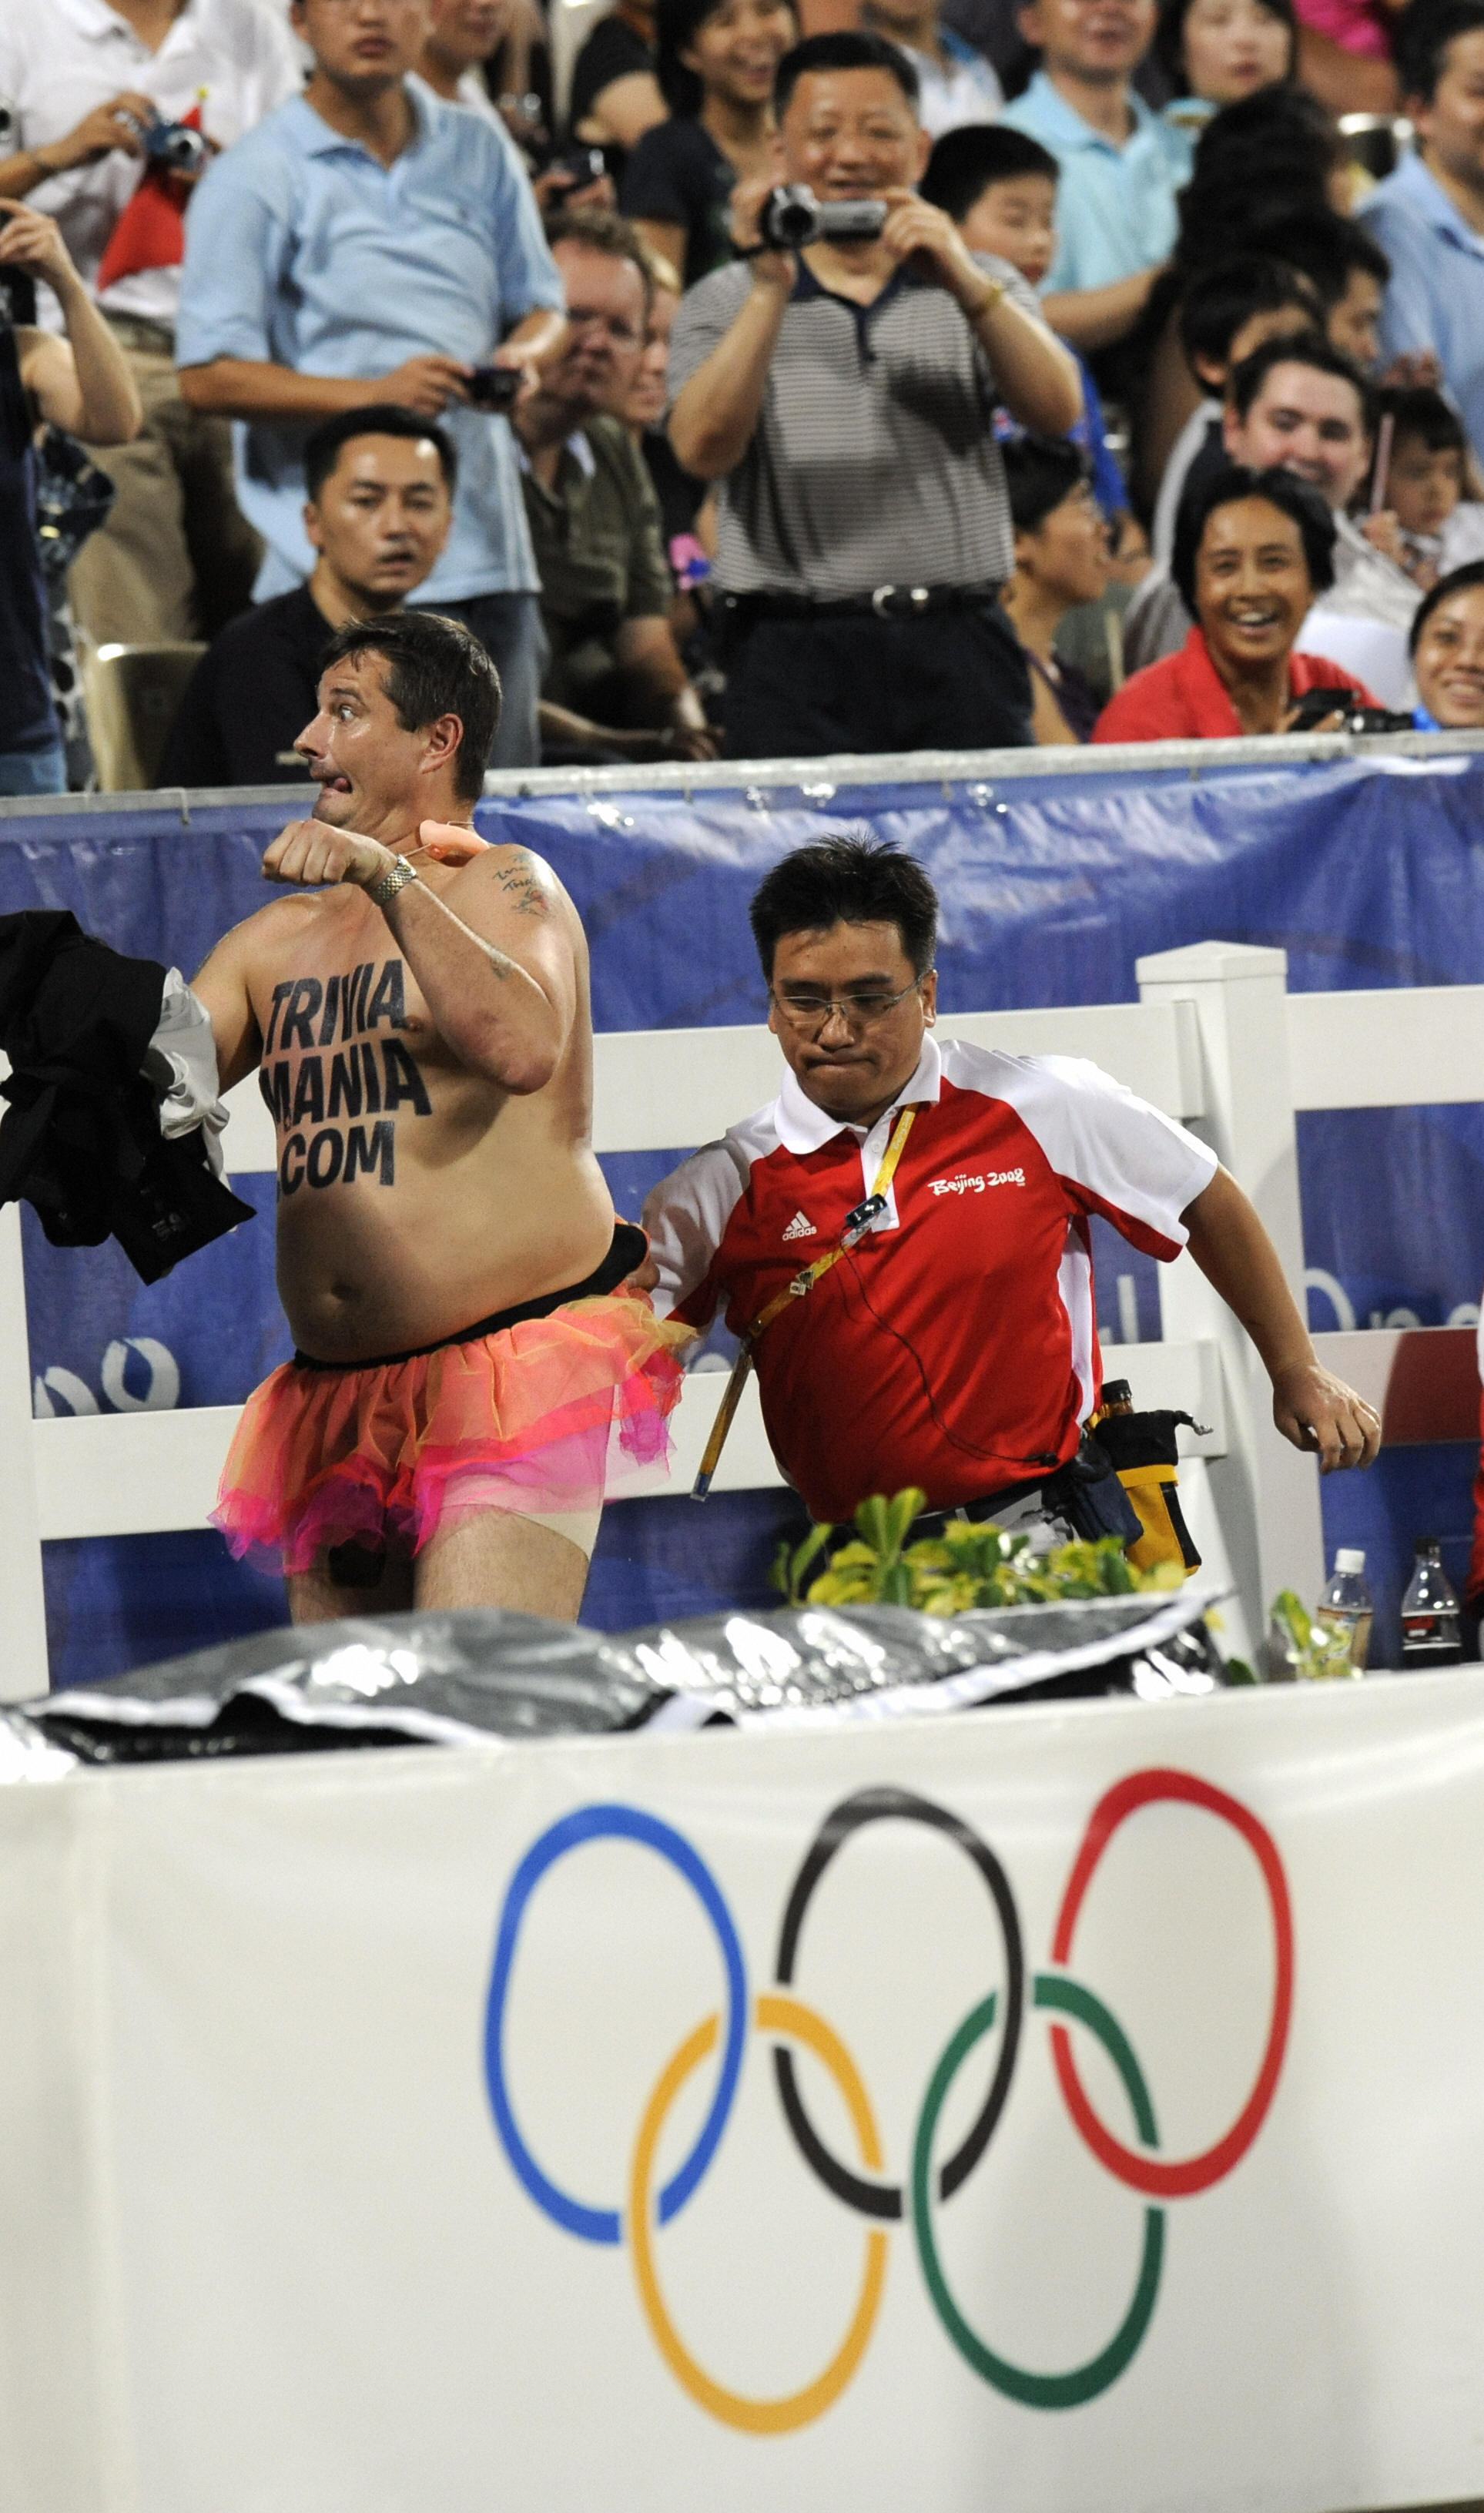 An Official escorts British streaker Mark Roberts after he  performed  during the jumping individual final of the 2008 Beijing Olympic Games on August 21, 2008 in Hong Kong . Ten riders jumped clear rounds in the first of two qualifying rounds of the Olympic individual show jumping final here Thursday. AFP PHOTO/DDP/DAVID HECKER (Photo credit should read DAVID HECKER/AFP/Getty Images)